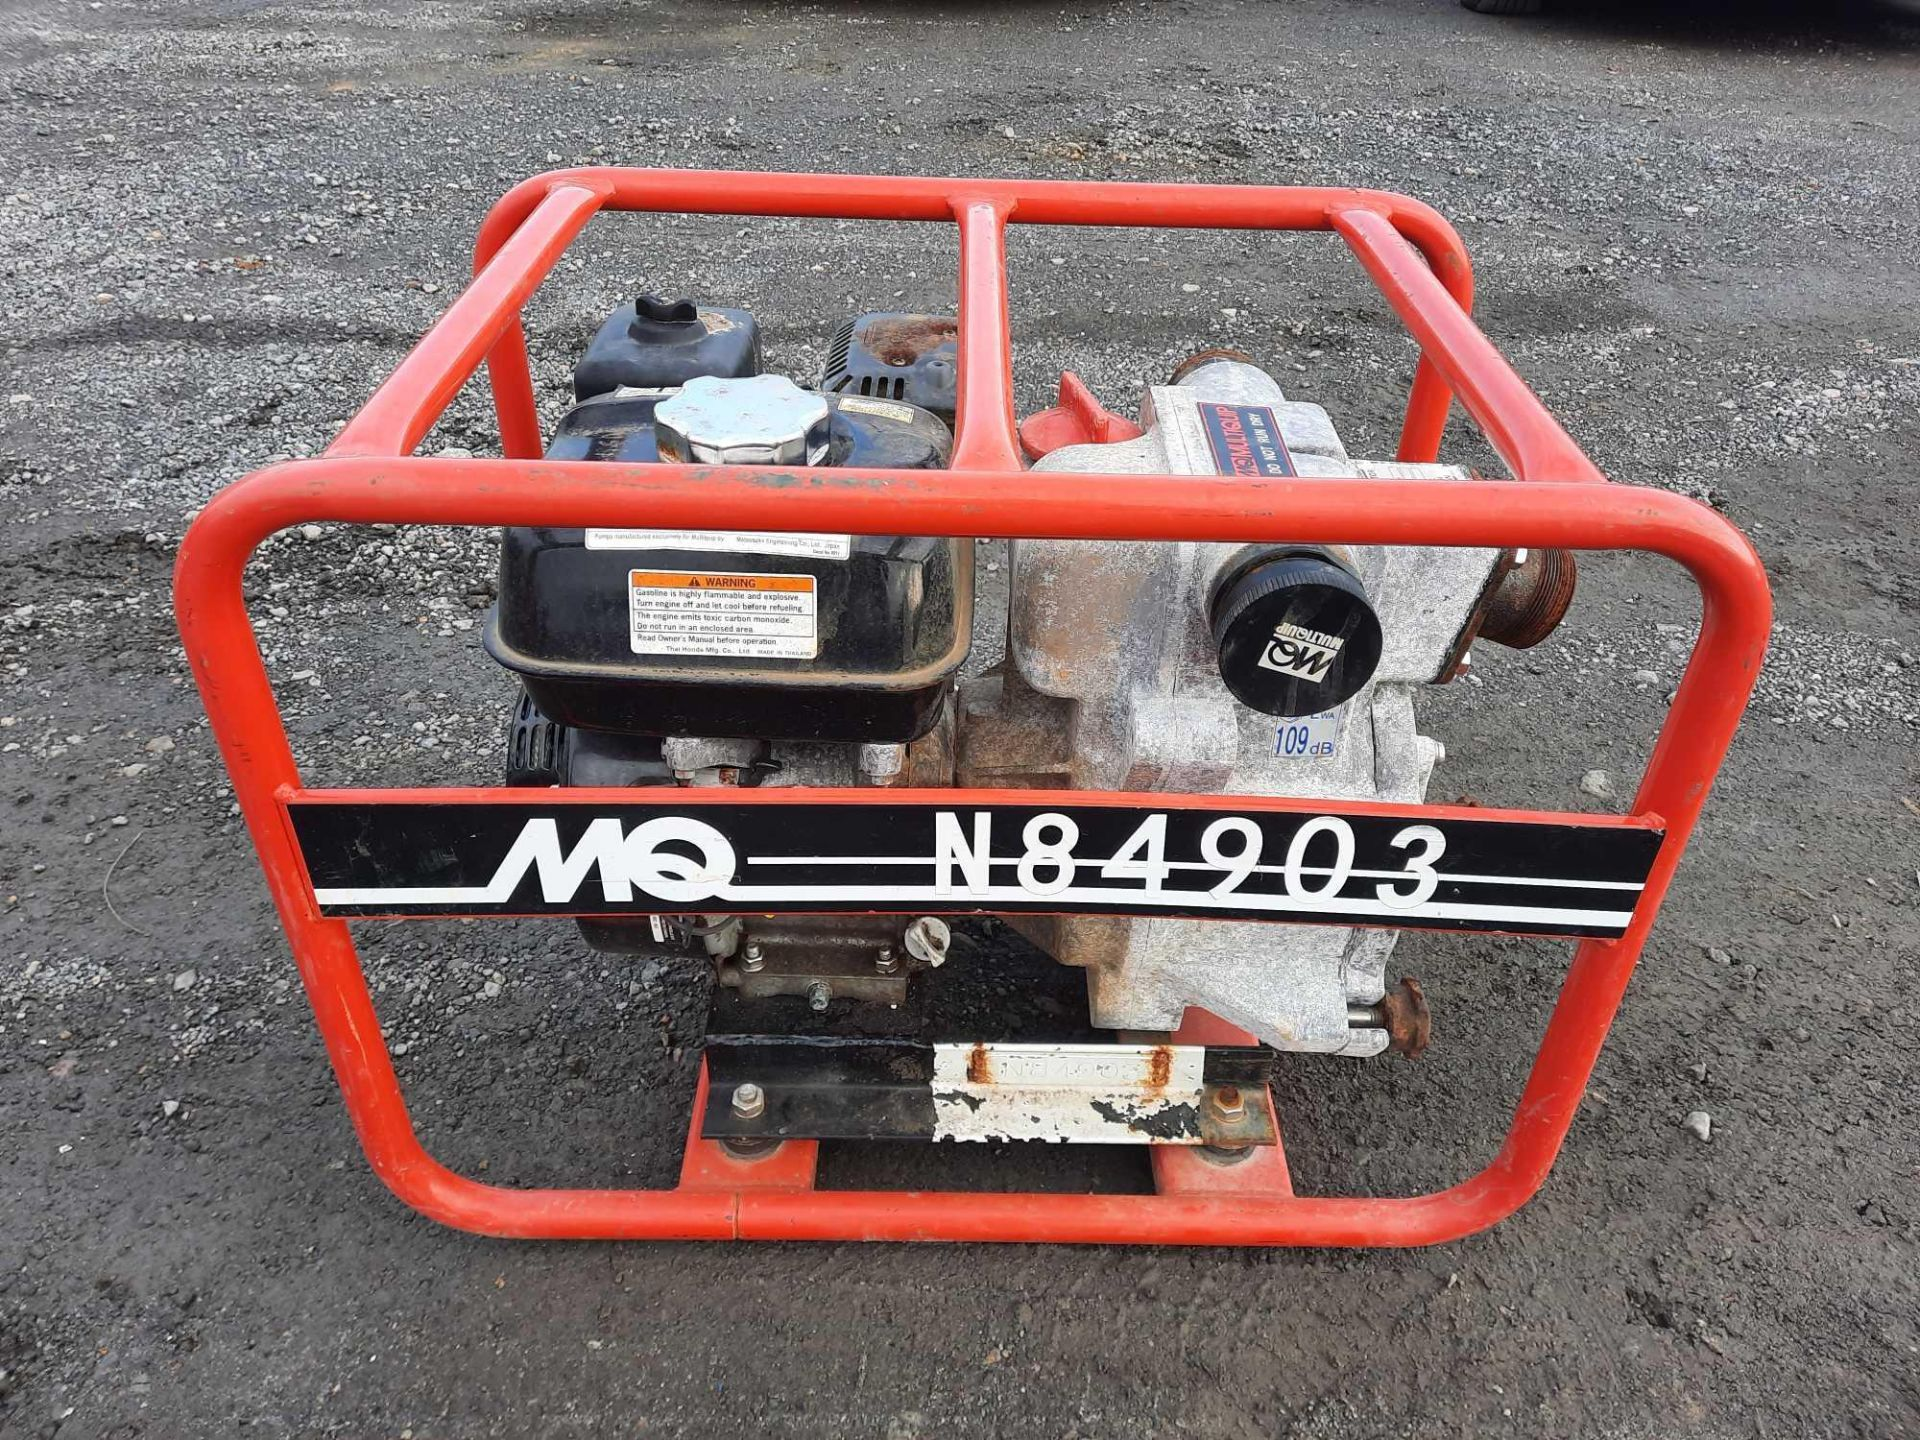 2013 MULTIQUIP QP2TH PUMP (VDOT UNIT #: N84903)